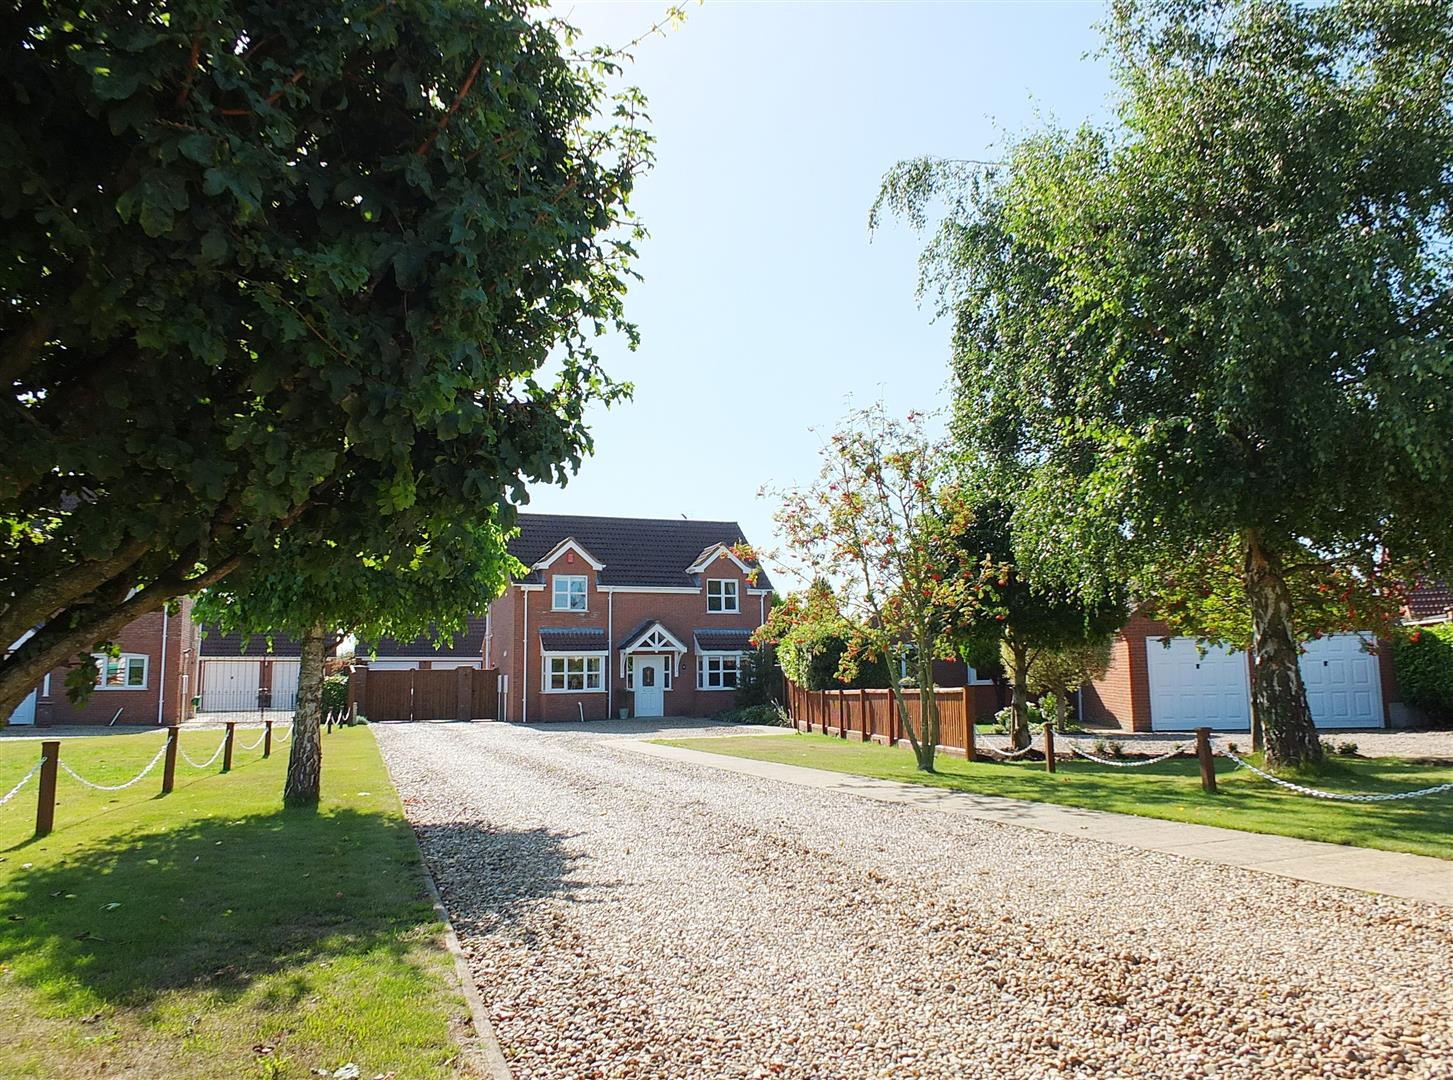 4 bed detached house for sale in Lutton Spalding, PE12 9HP, PE12